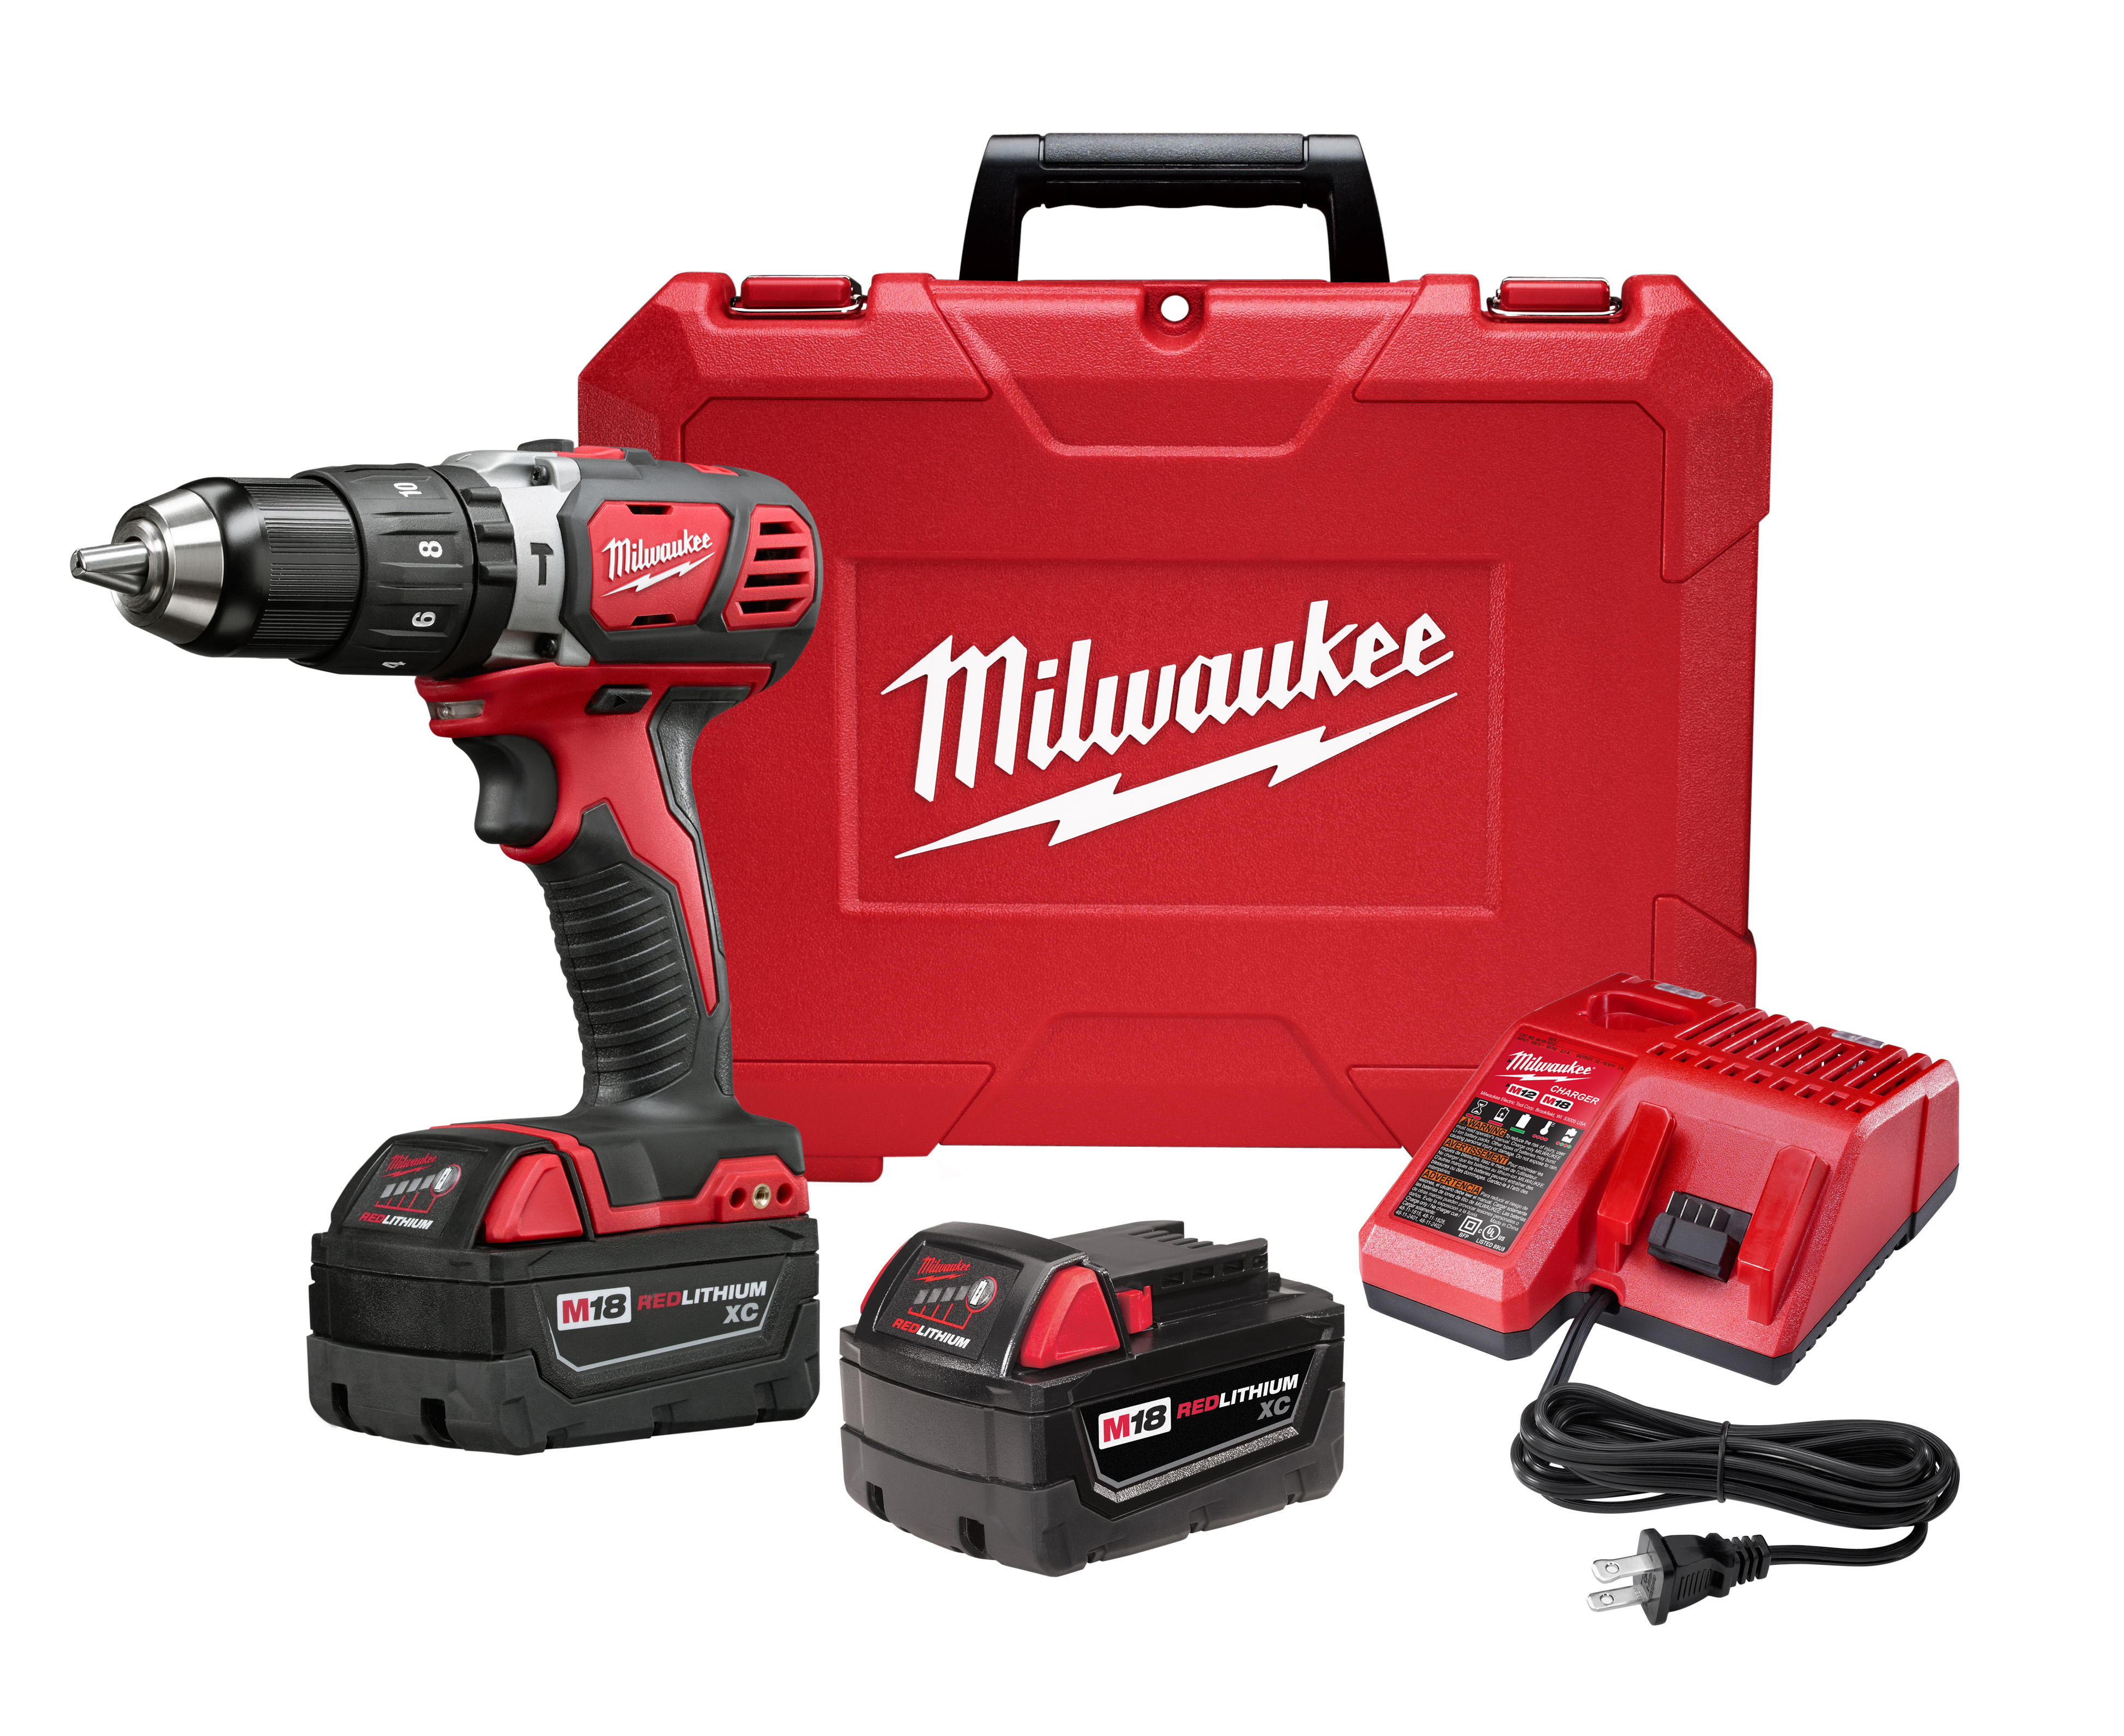 Milwaukee® M18™ 2607-22 Hammer Drill/Driver Kit, 1/2 in Metal Single Sleeve Ratcheting Lock Chuck, 18 VDC, 400/1800 rpm No-Load, Lithium-Ion Battery